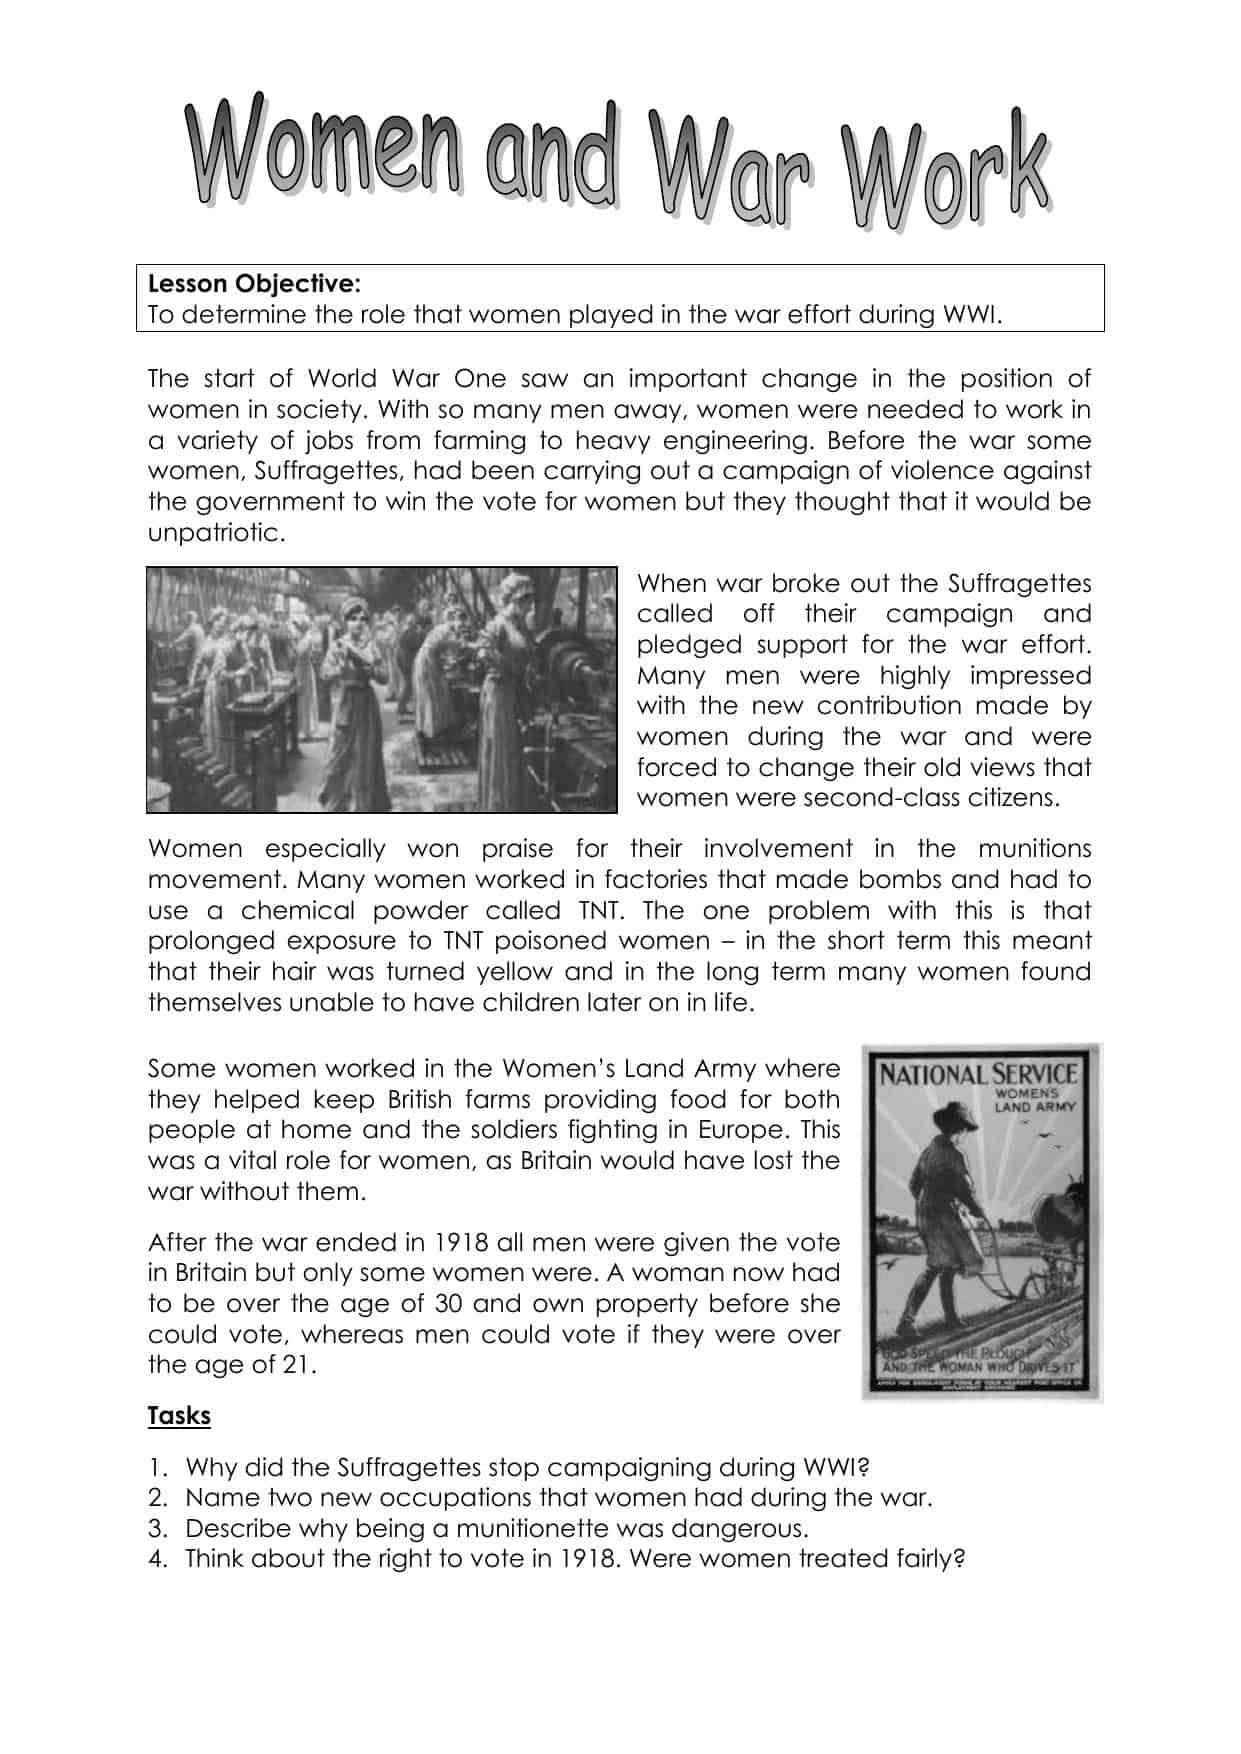 Ww2 Worksheet With Powerpoint